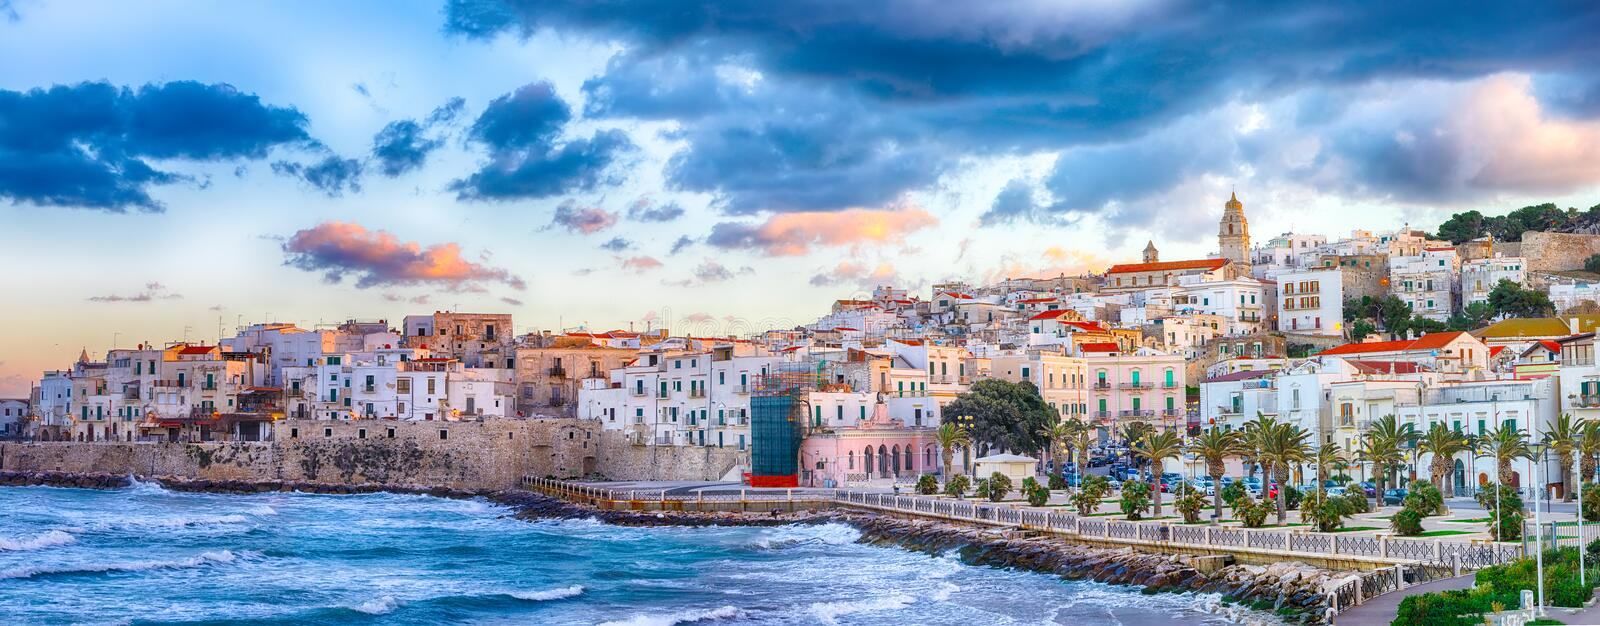 Historic central city of the beautiful town called Vieste stock photos